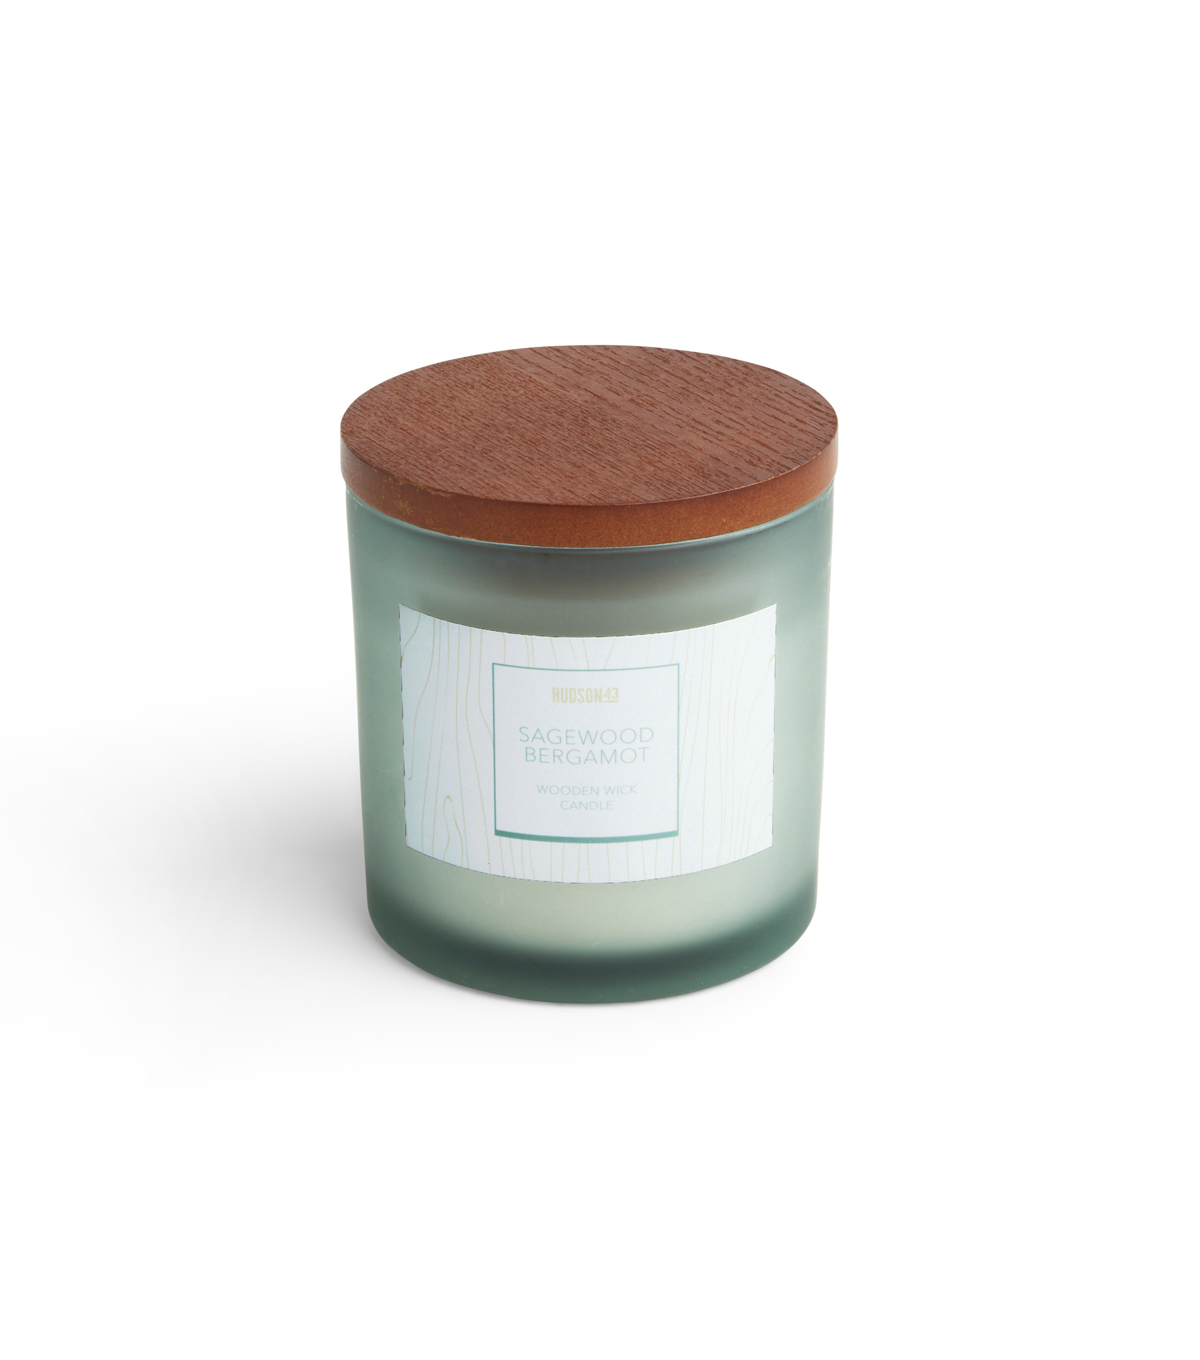 Haven St. Candle Co. 12 oz. Sagewood Bergamot Scented Wooden Wick Candle